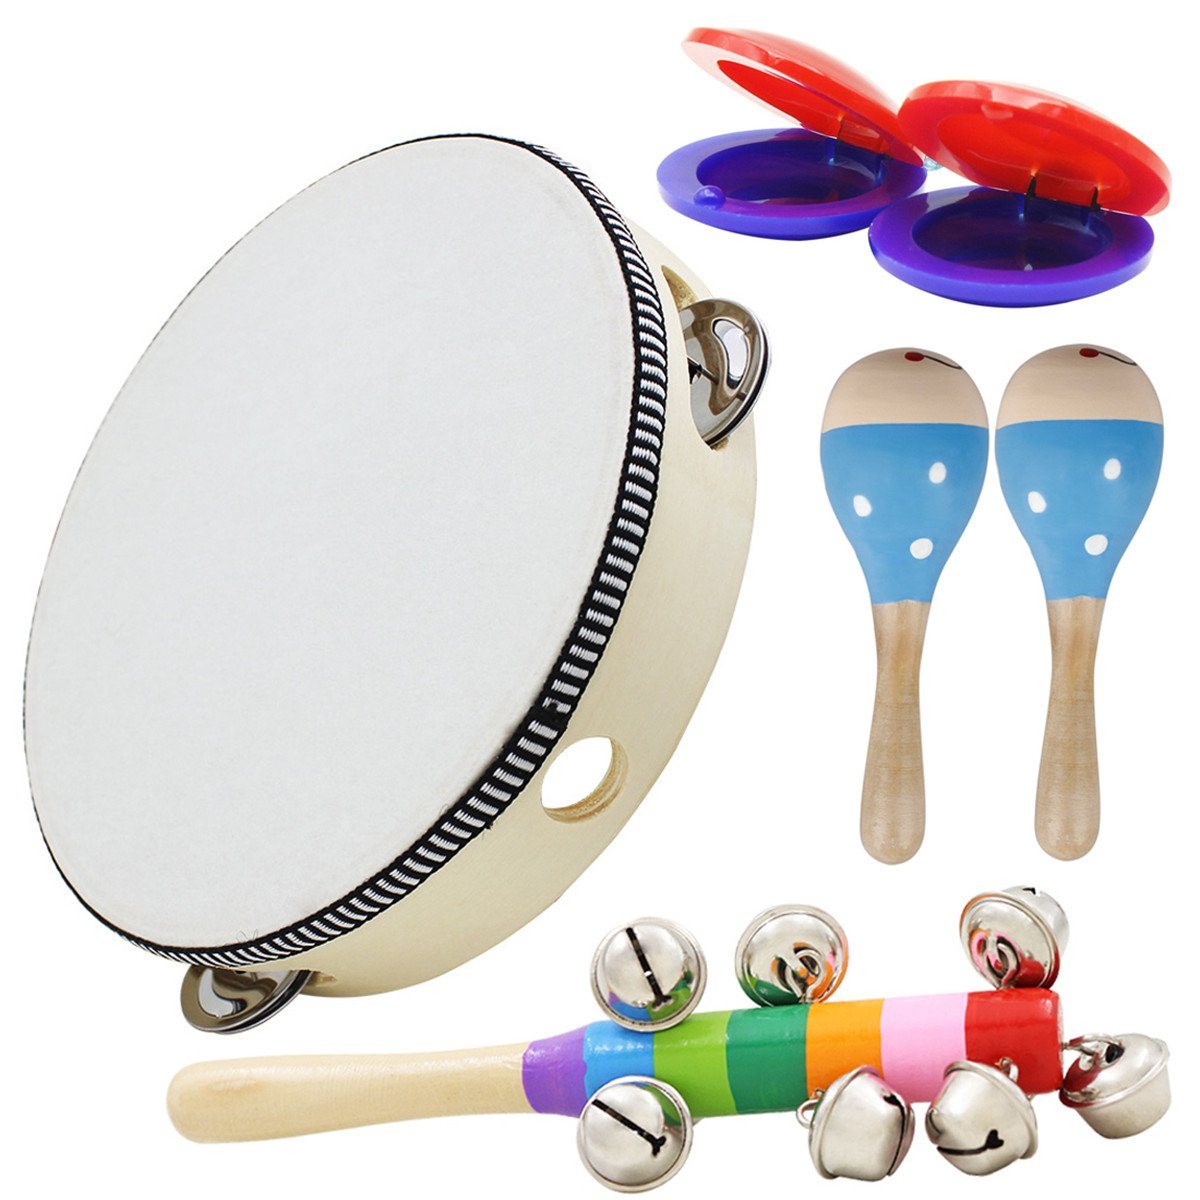 6 Piece Set Orff Musical Instruments Hand Shake Rattle Castanets Sand Hammer Vertical Bell Education